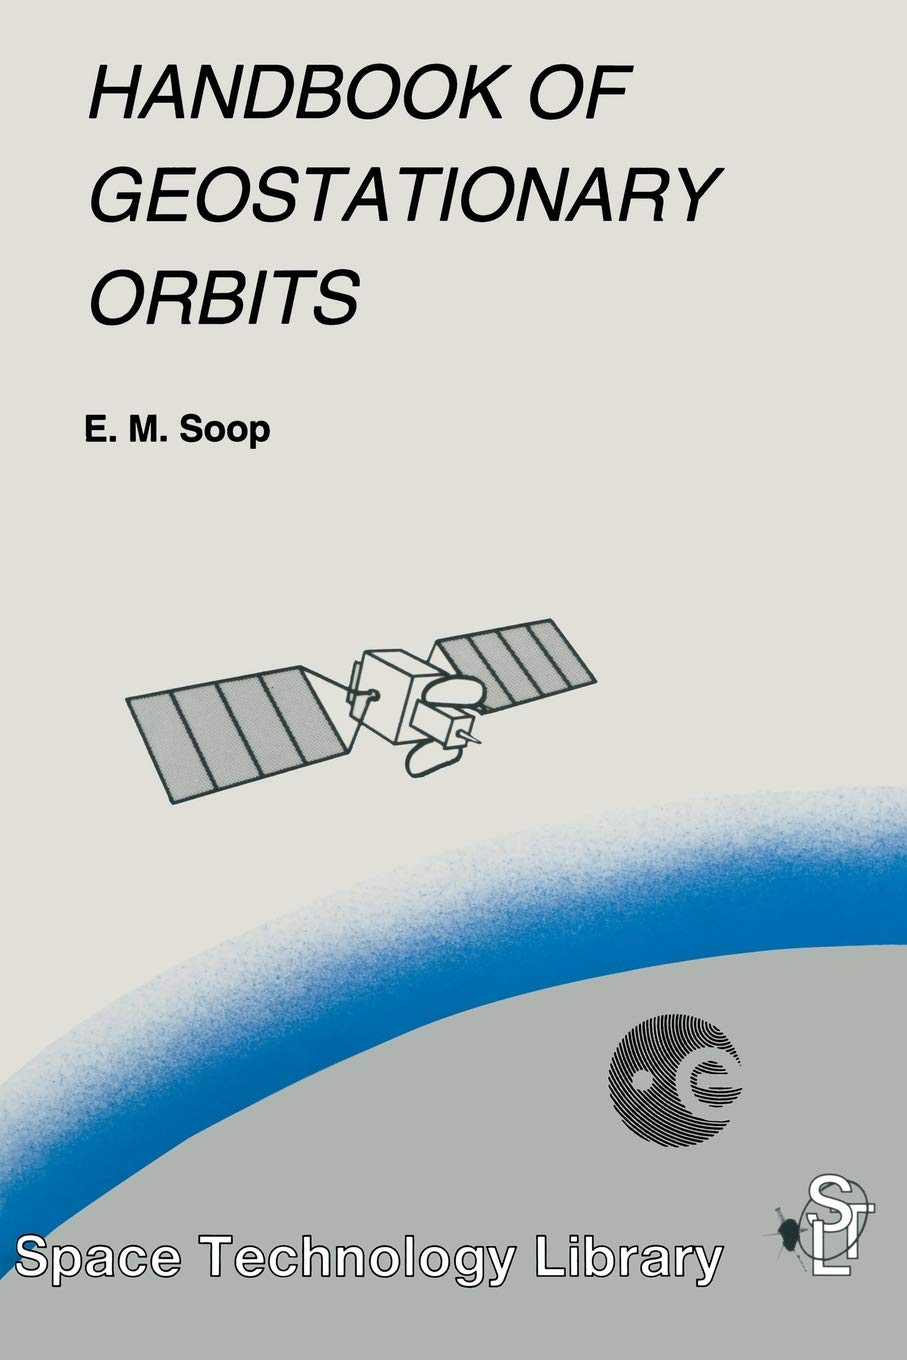 Image OfHandbook Of Geostationary Orbits (Space Technology Library (3))